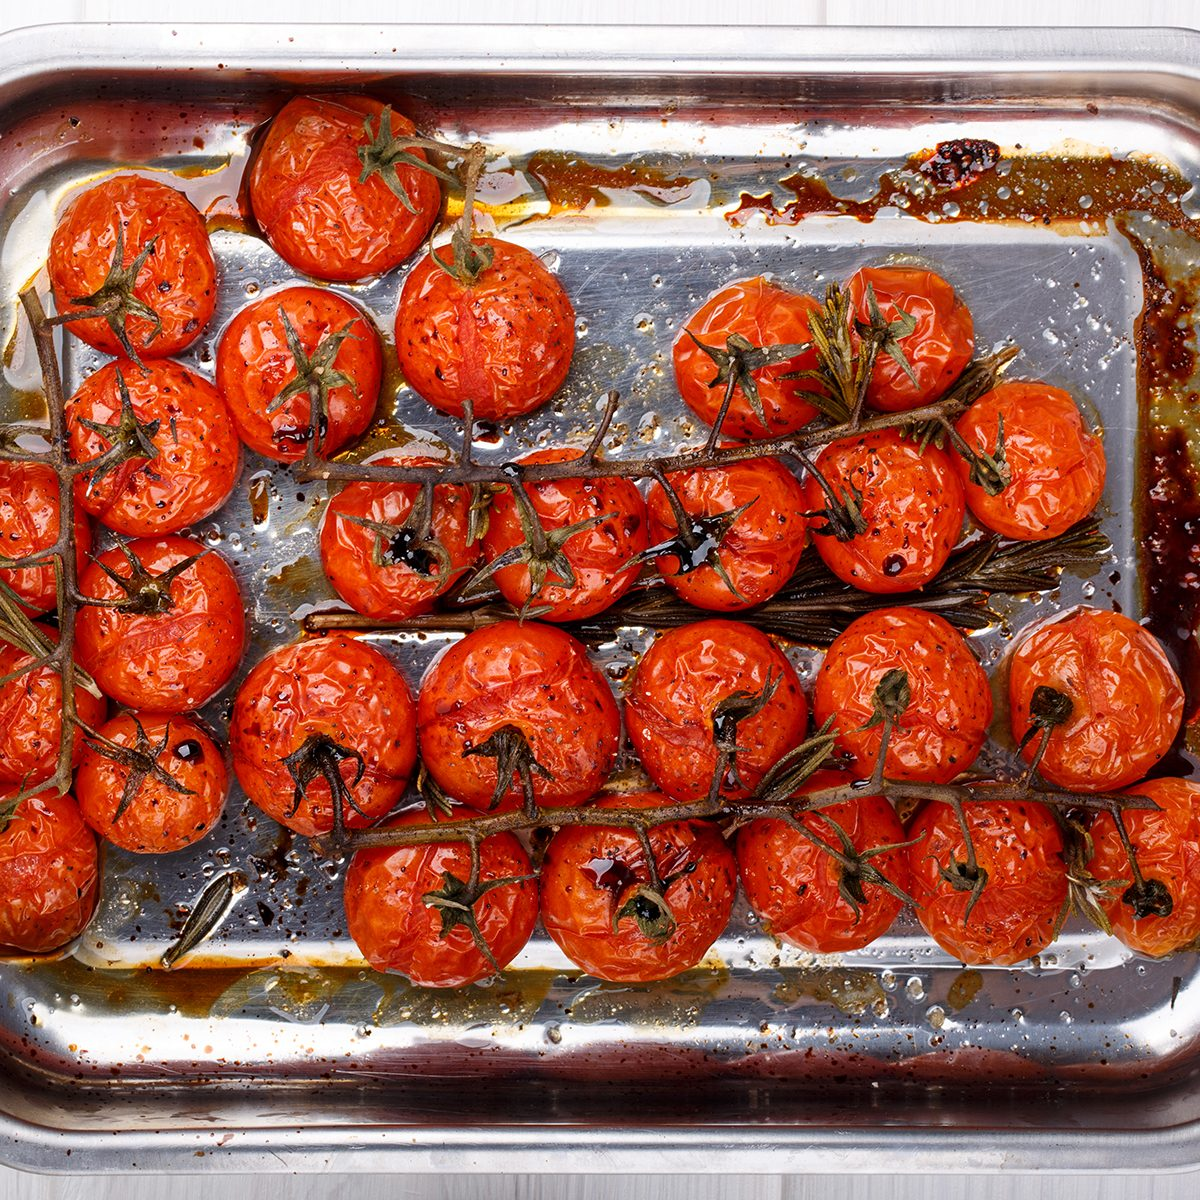 Cherry tomatoes on the vine roasted with herbs and balsamic vinegar. Top view.